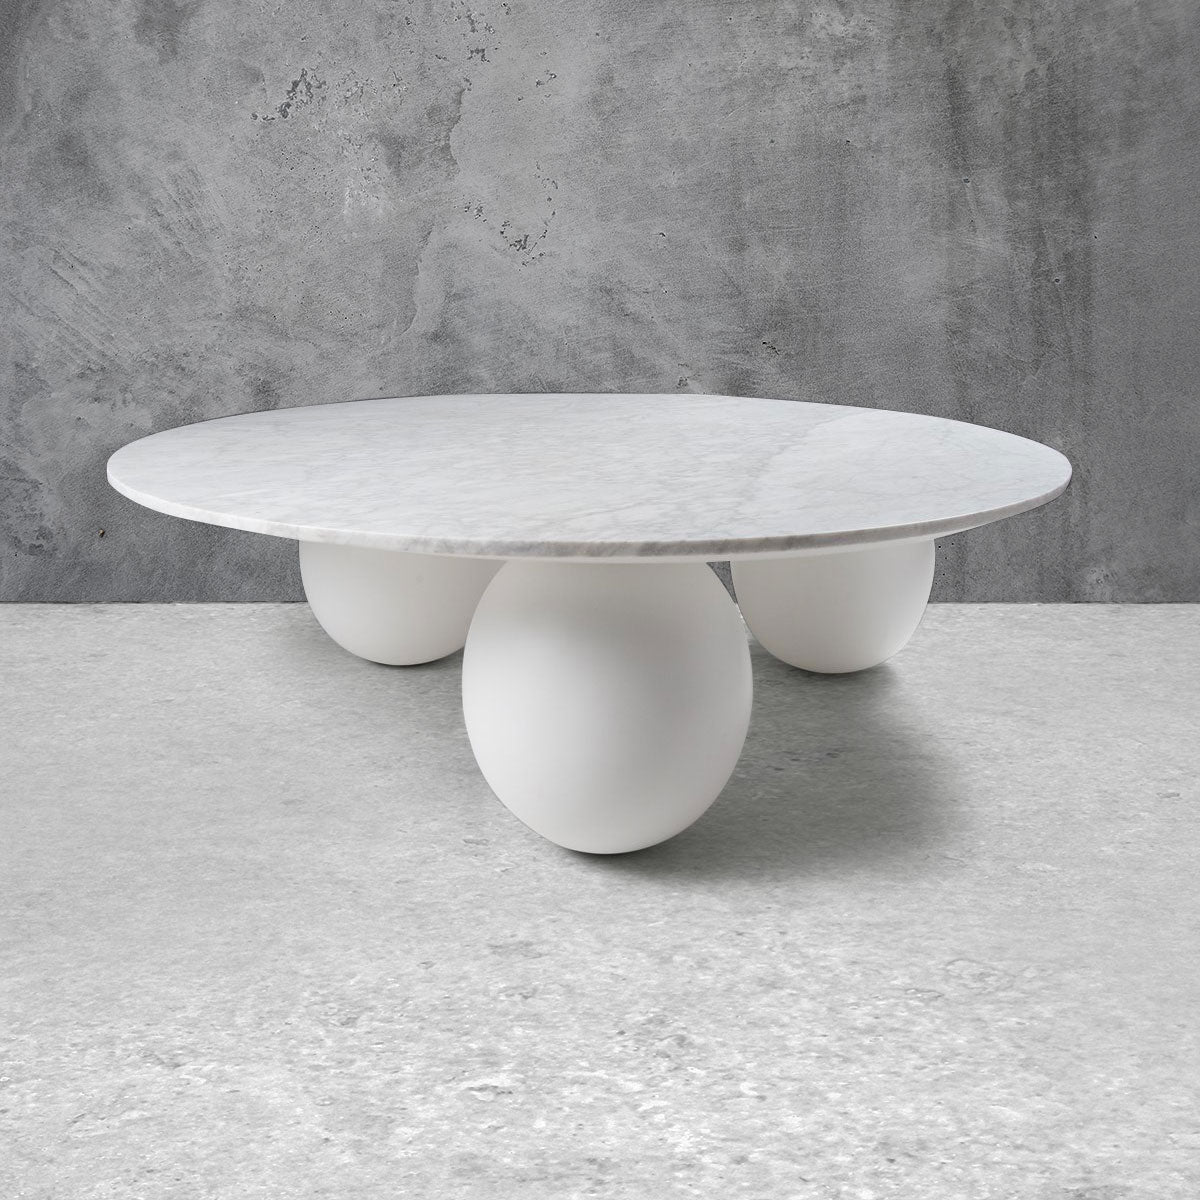 Modern round coffee table with three spherical legs in white and a light marble top.